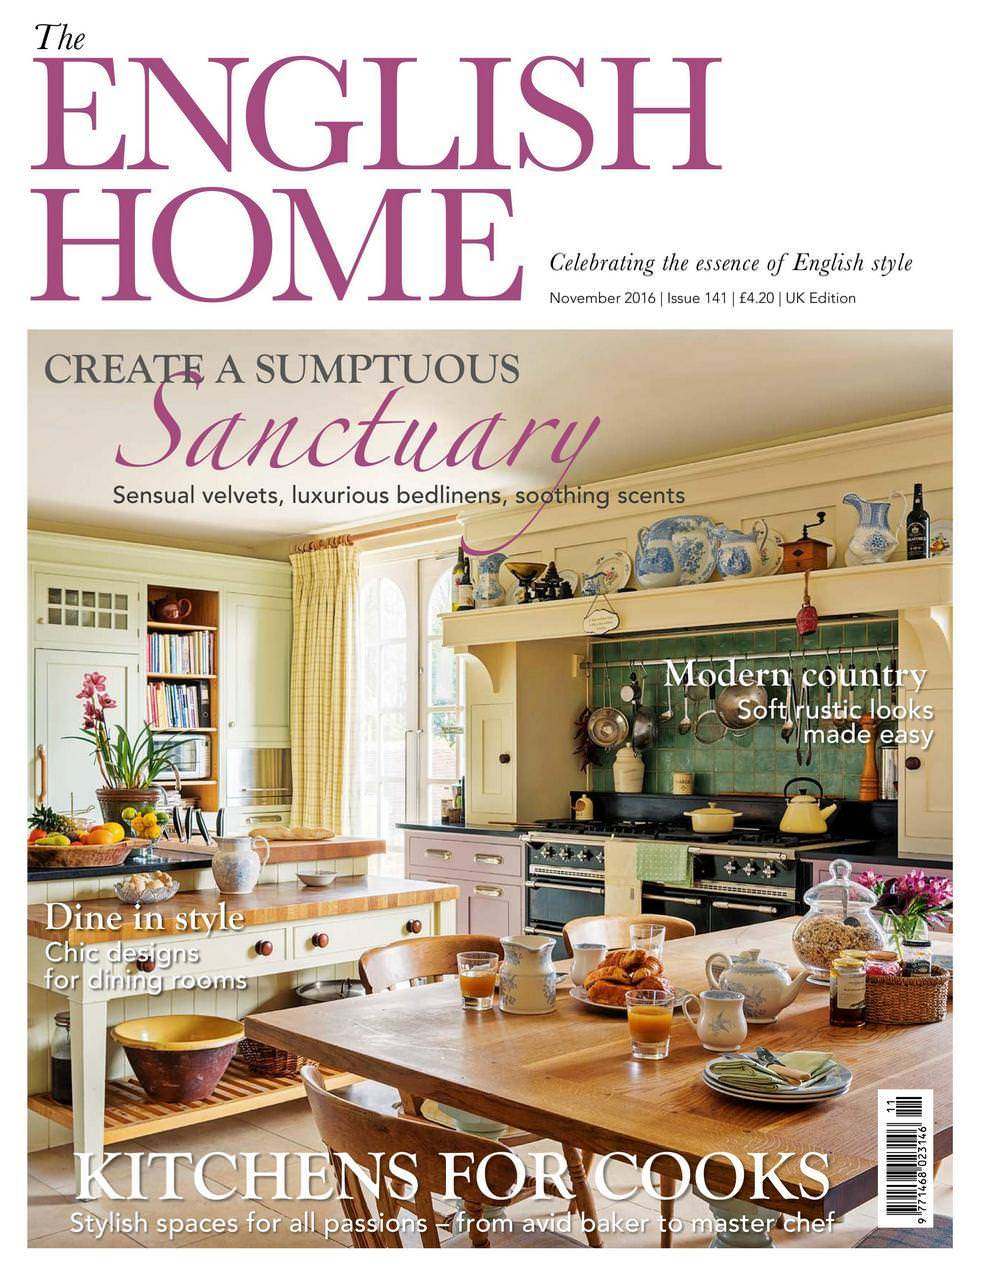 The English Home November 2016-March 2017